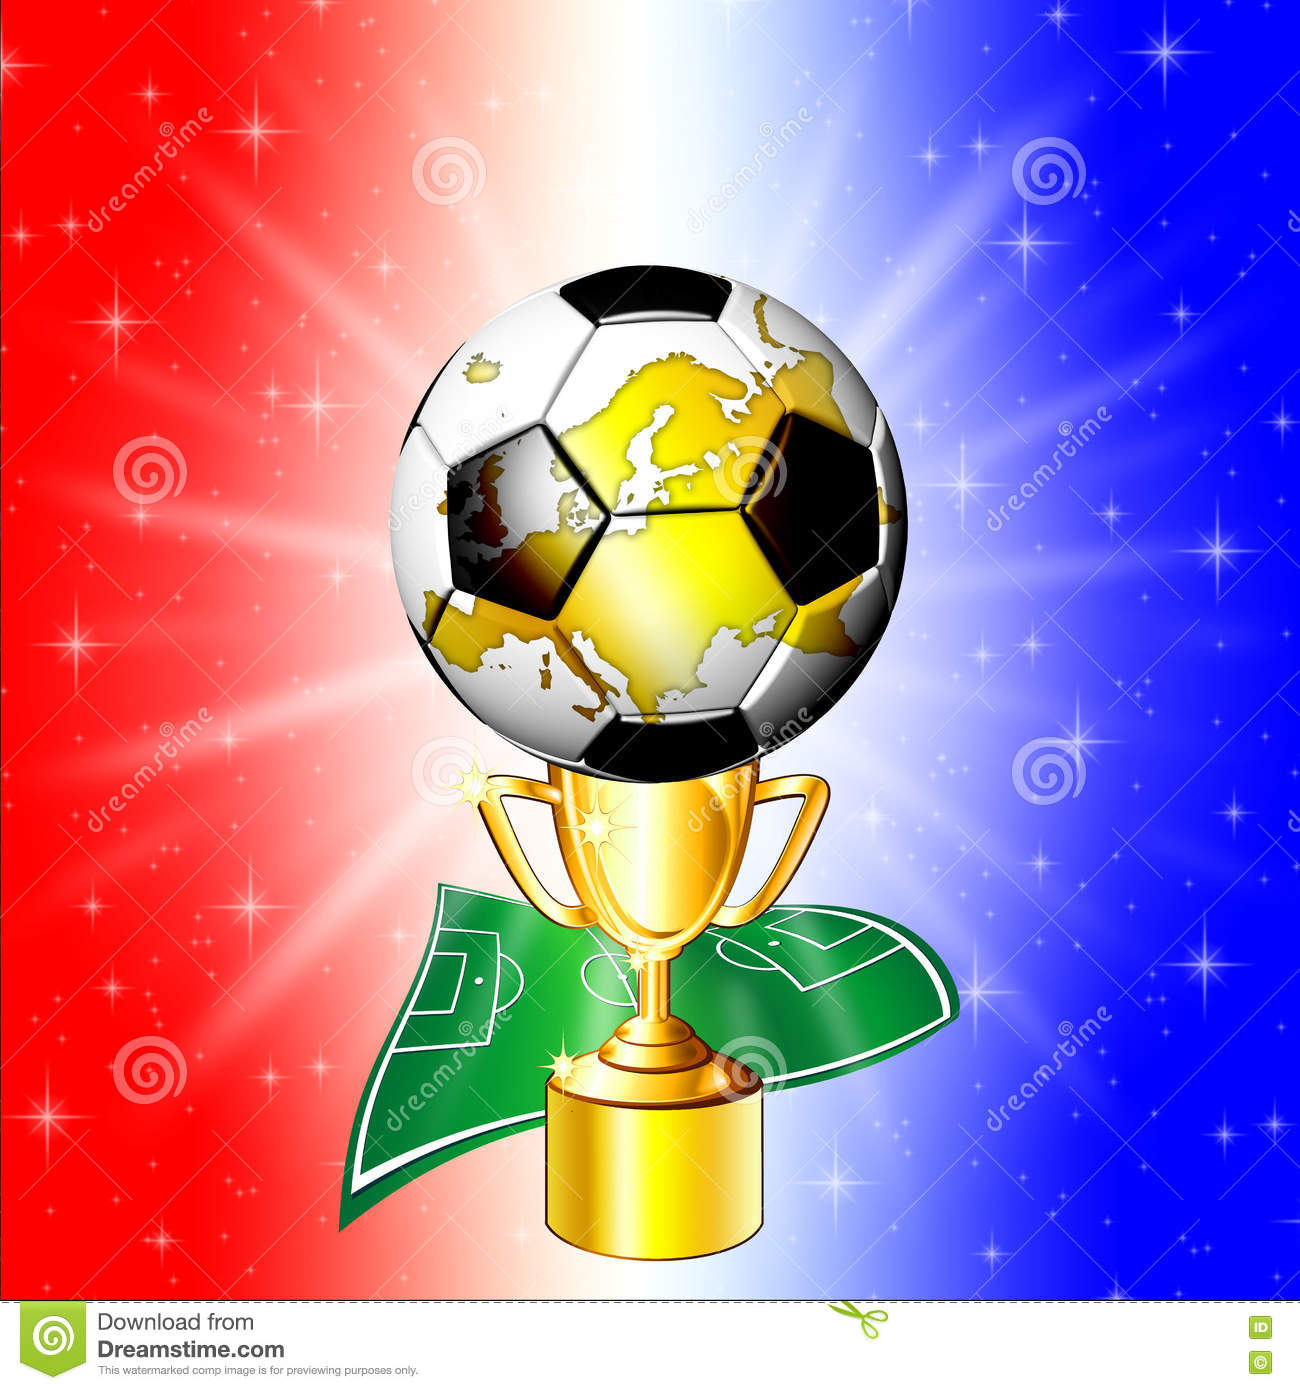 Football Championship Golden Cup